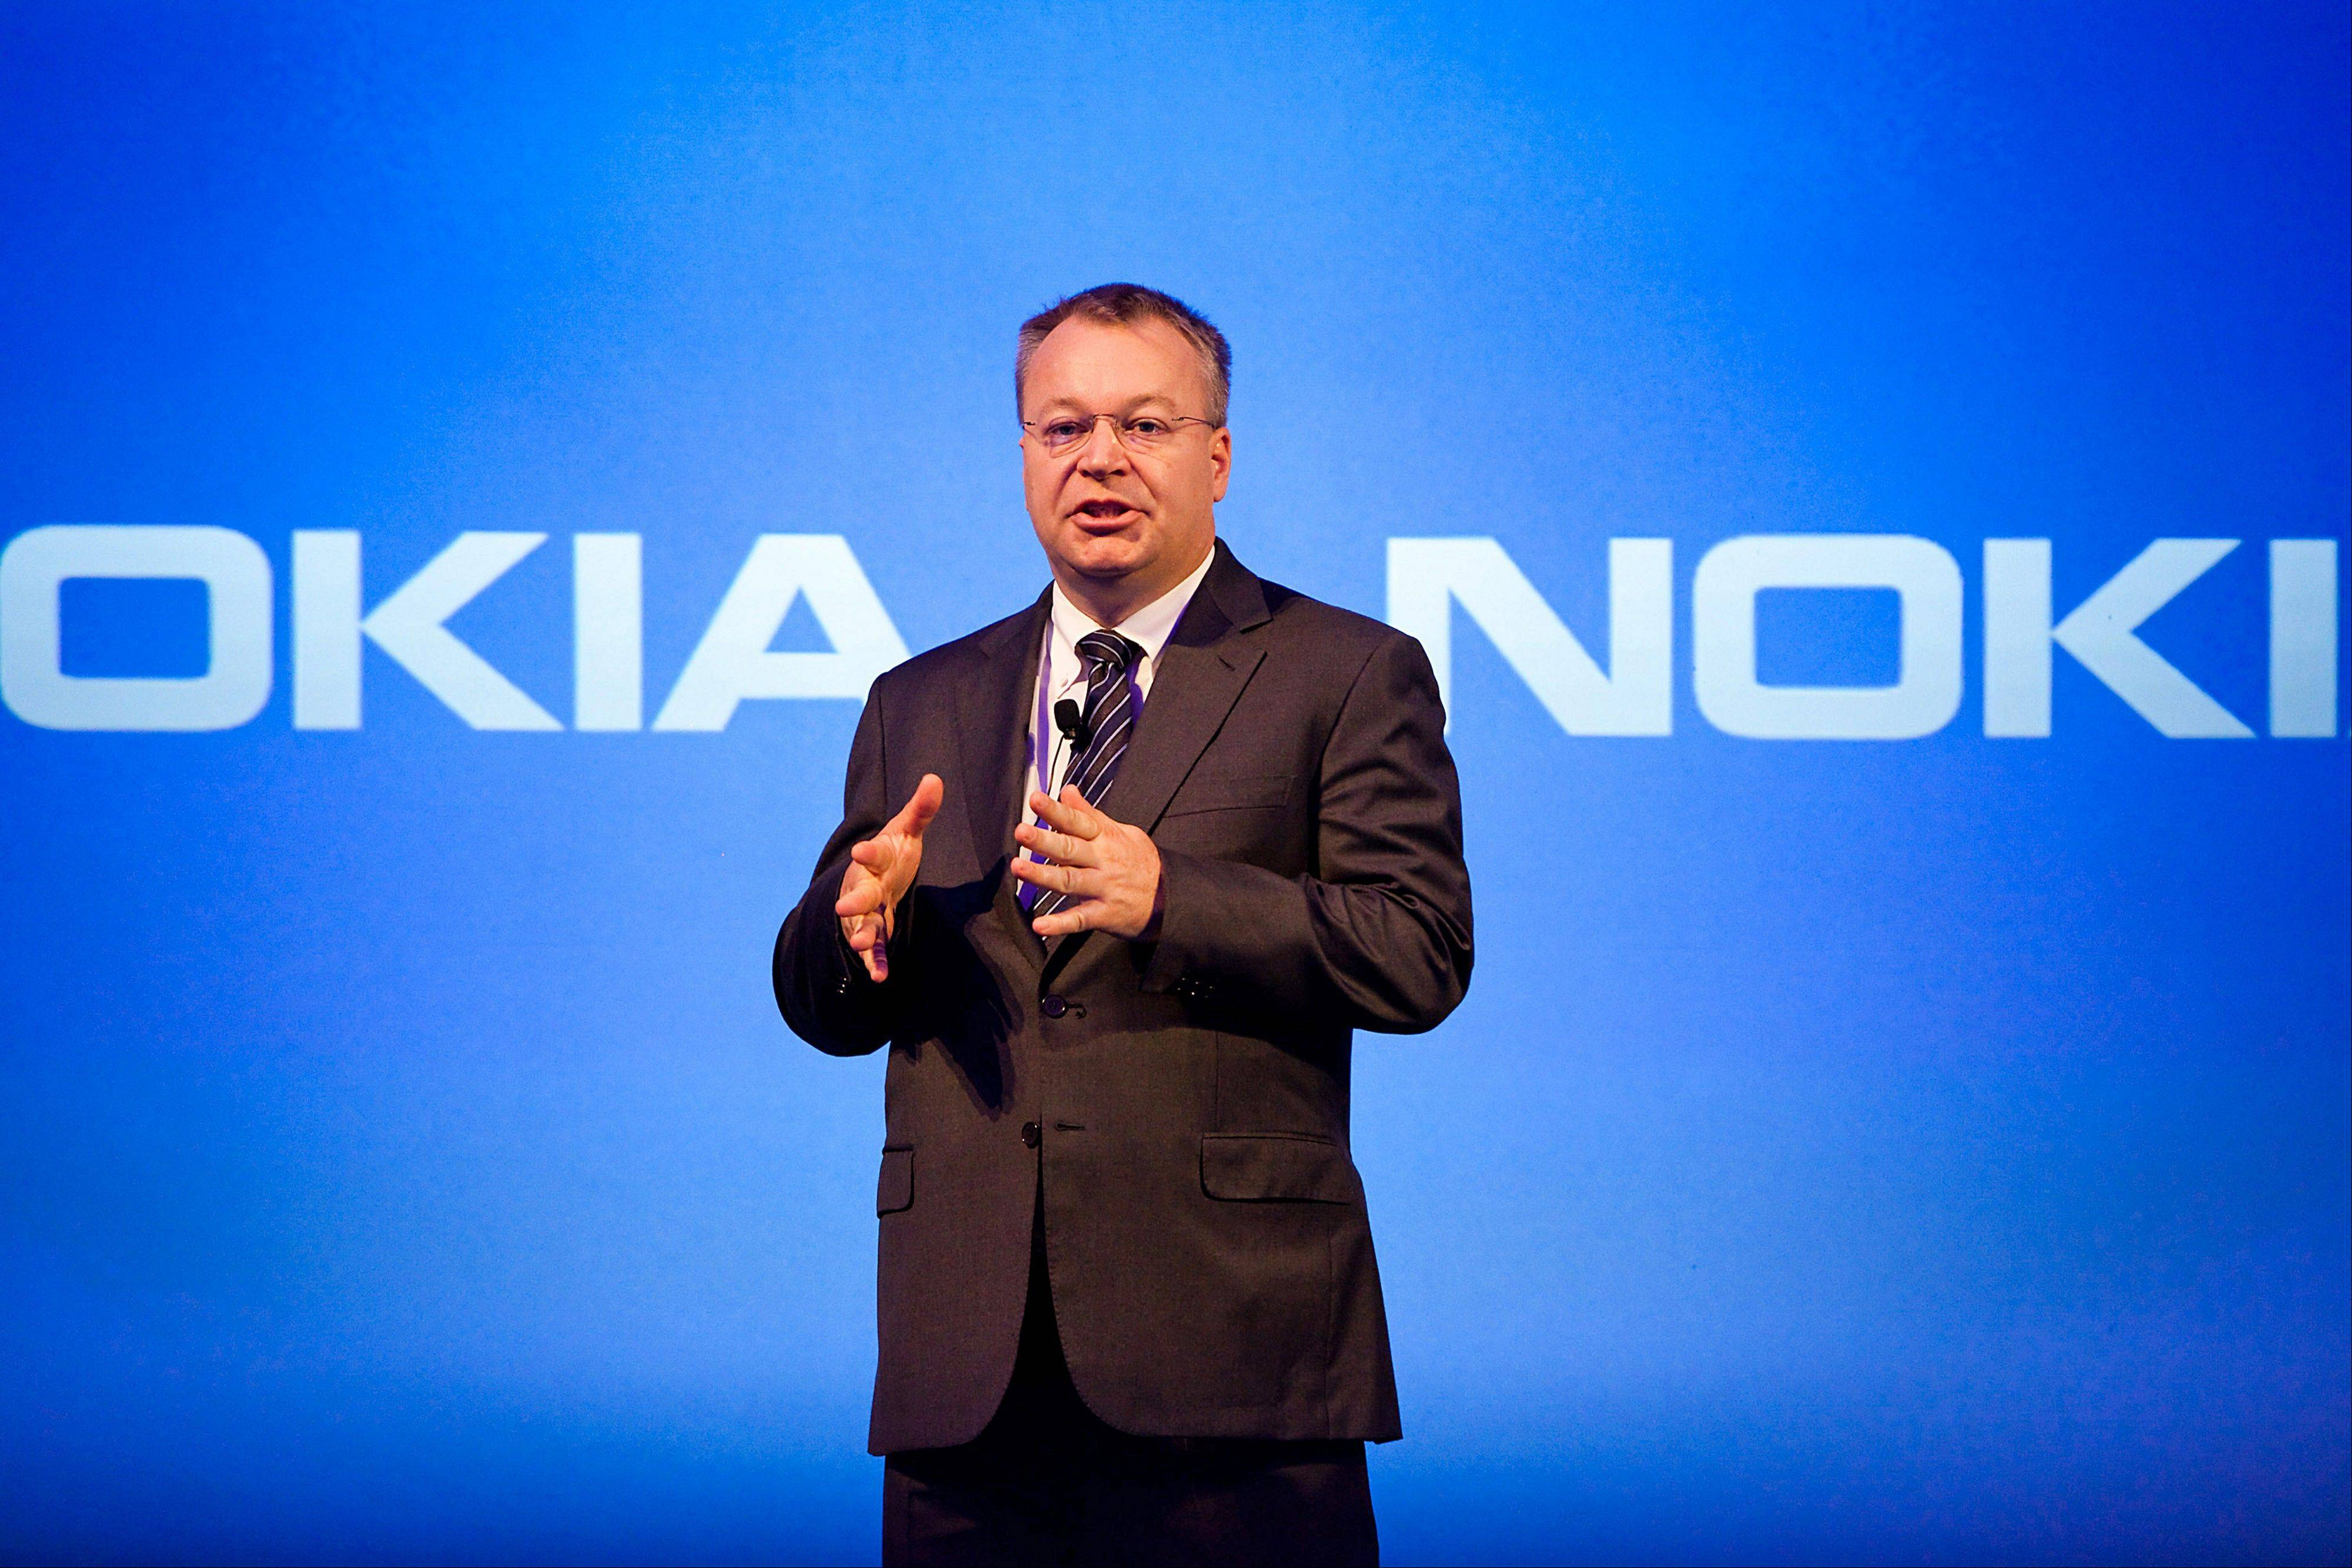 Stephen Elop, outgoing chief executive officer of Nokia Oyj, speaks Tuesday during a news conference at the Dipoli conference center in Espoo, Finland. Microsoft Corp. agreed to buy Nokia Oyj's handset business and license its patents for$7.2 billion, casting together the lot of two companies trying to stay relevant against fleet-footed technology rivals.